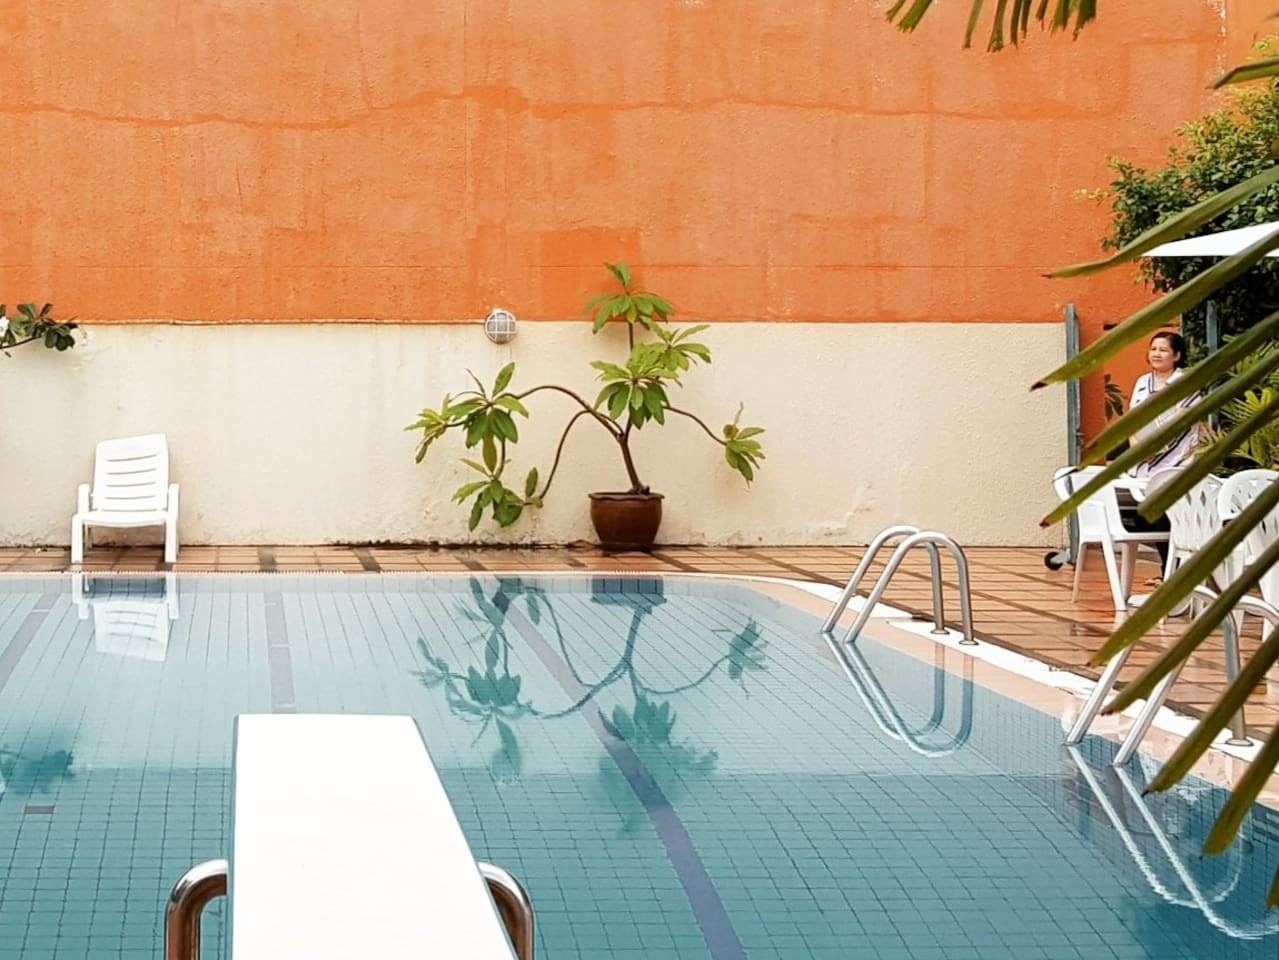 Shared pool in a private residential area.